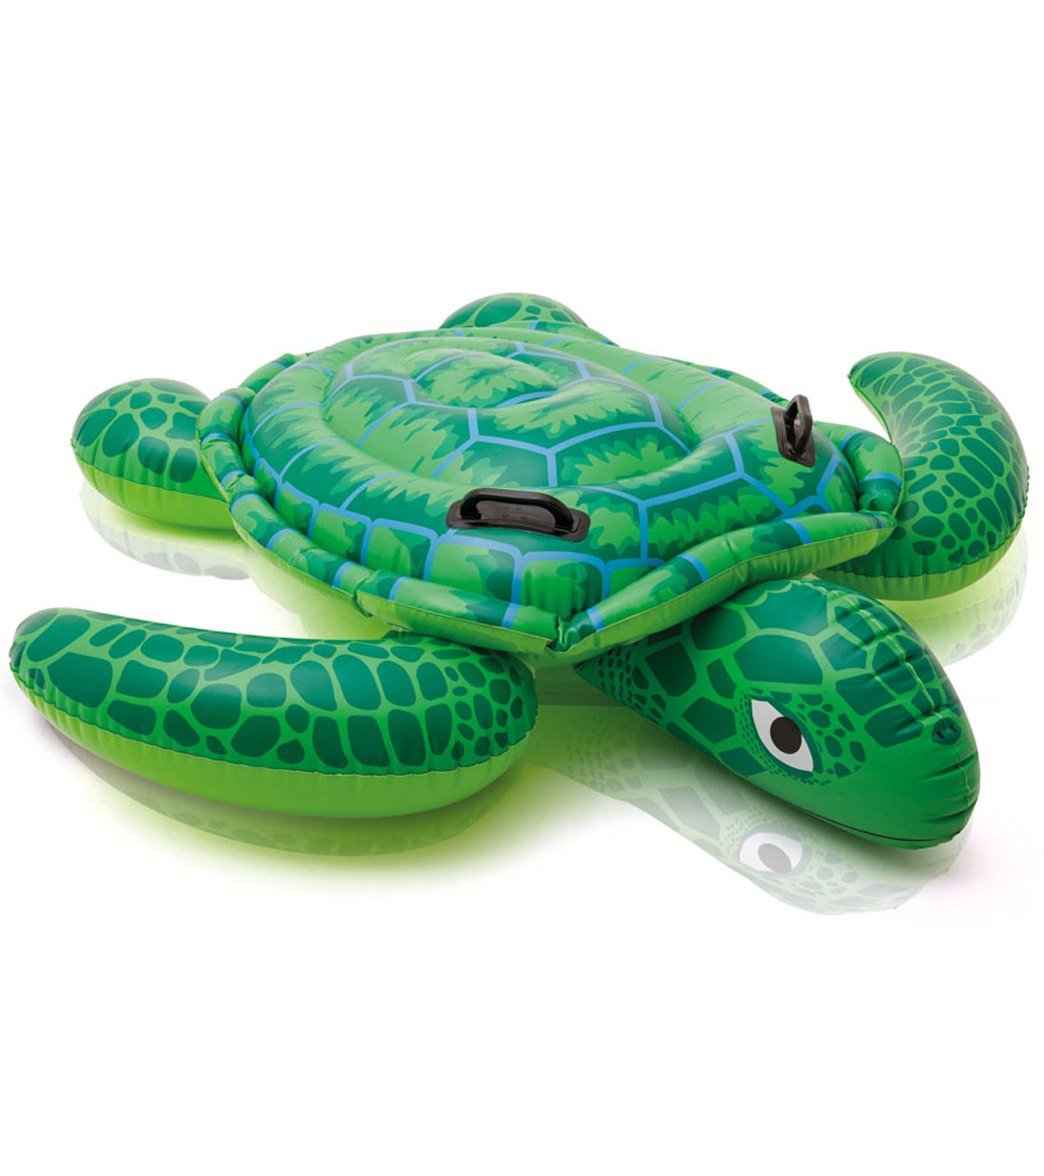 """Intex Sea Turtle Shade Inflatable Baby Pool, 40"""" X 42"""", for Ages 1-3"""